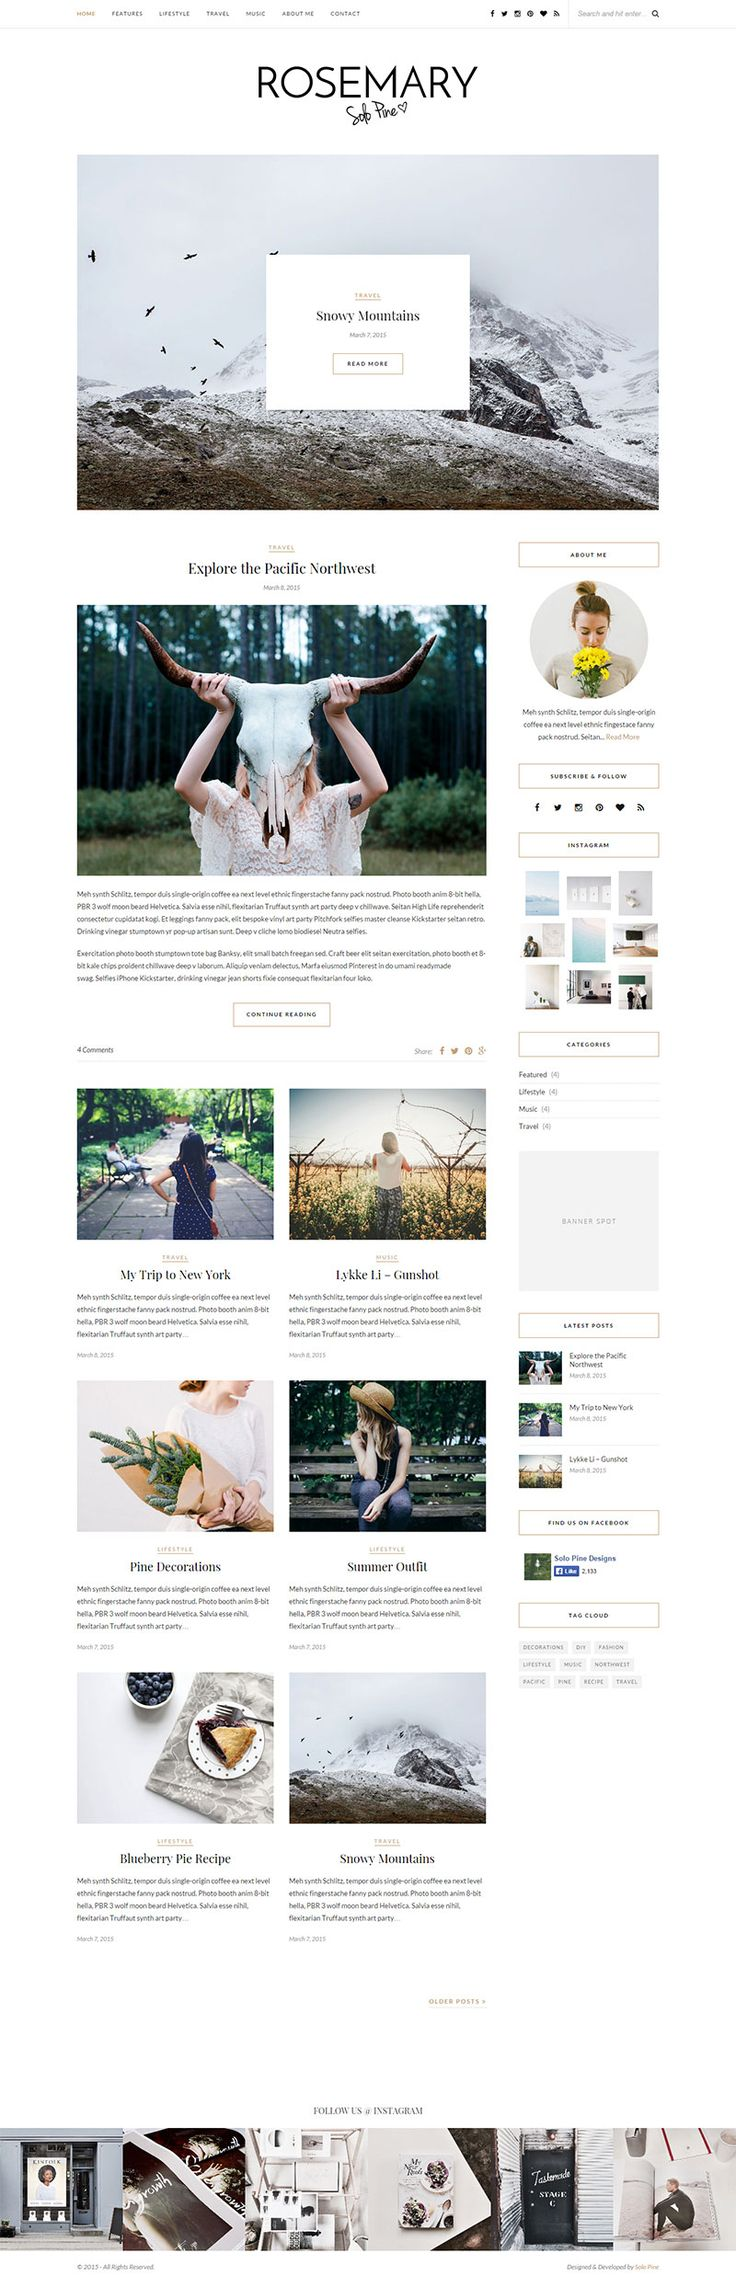 Rosemary is a light & bright blog theme, tailored to showcase your content in an effortlessly timeless style. Boasting popular features such as a full-width Instagram footer area, a showstopping featured area slider, and an abundance of post & layout options, Rosemary's clean, contemporary design is guaranteed to wow and inspire!